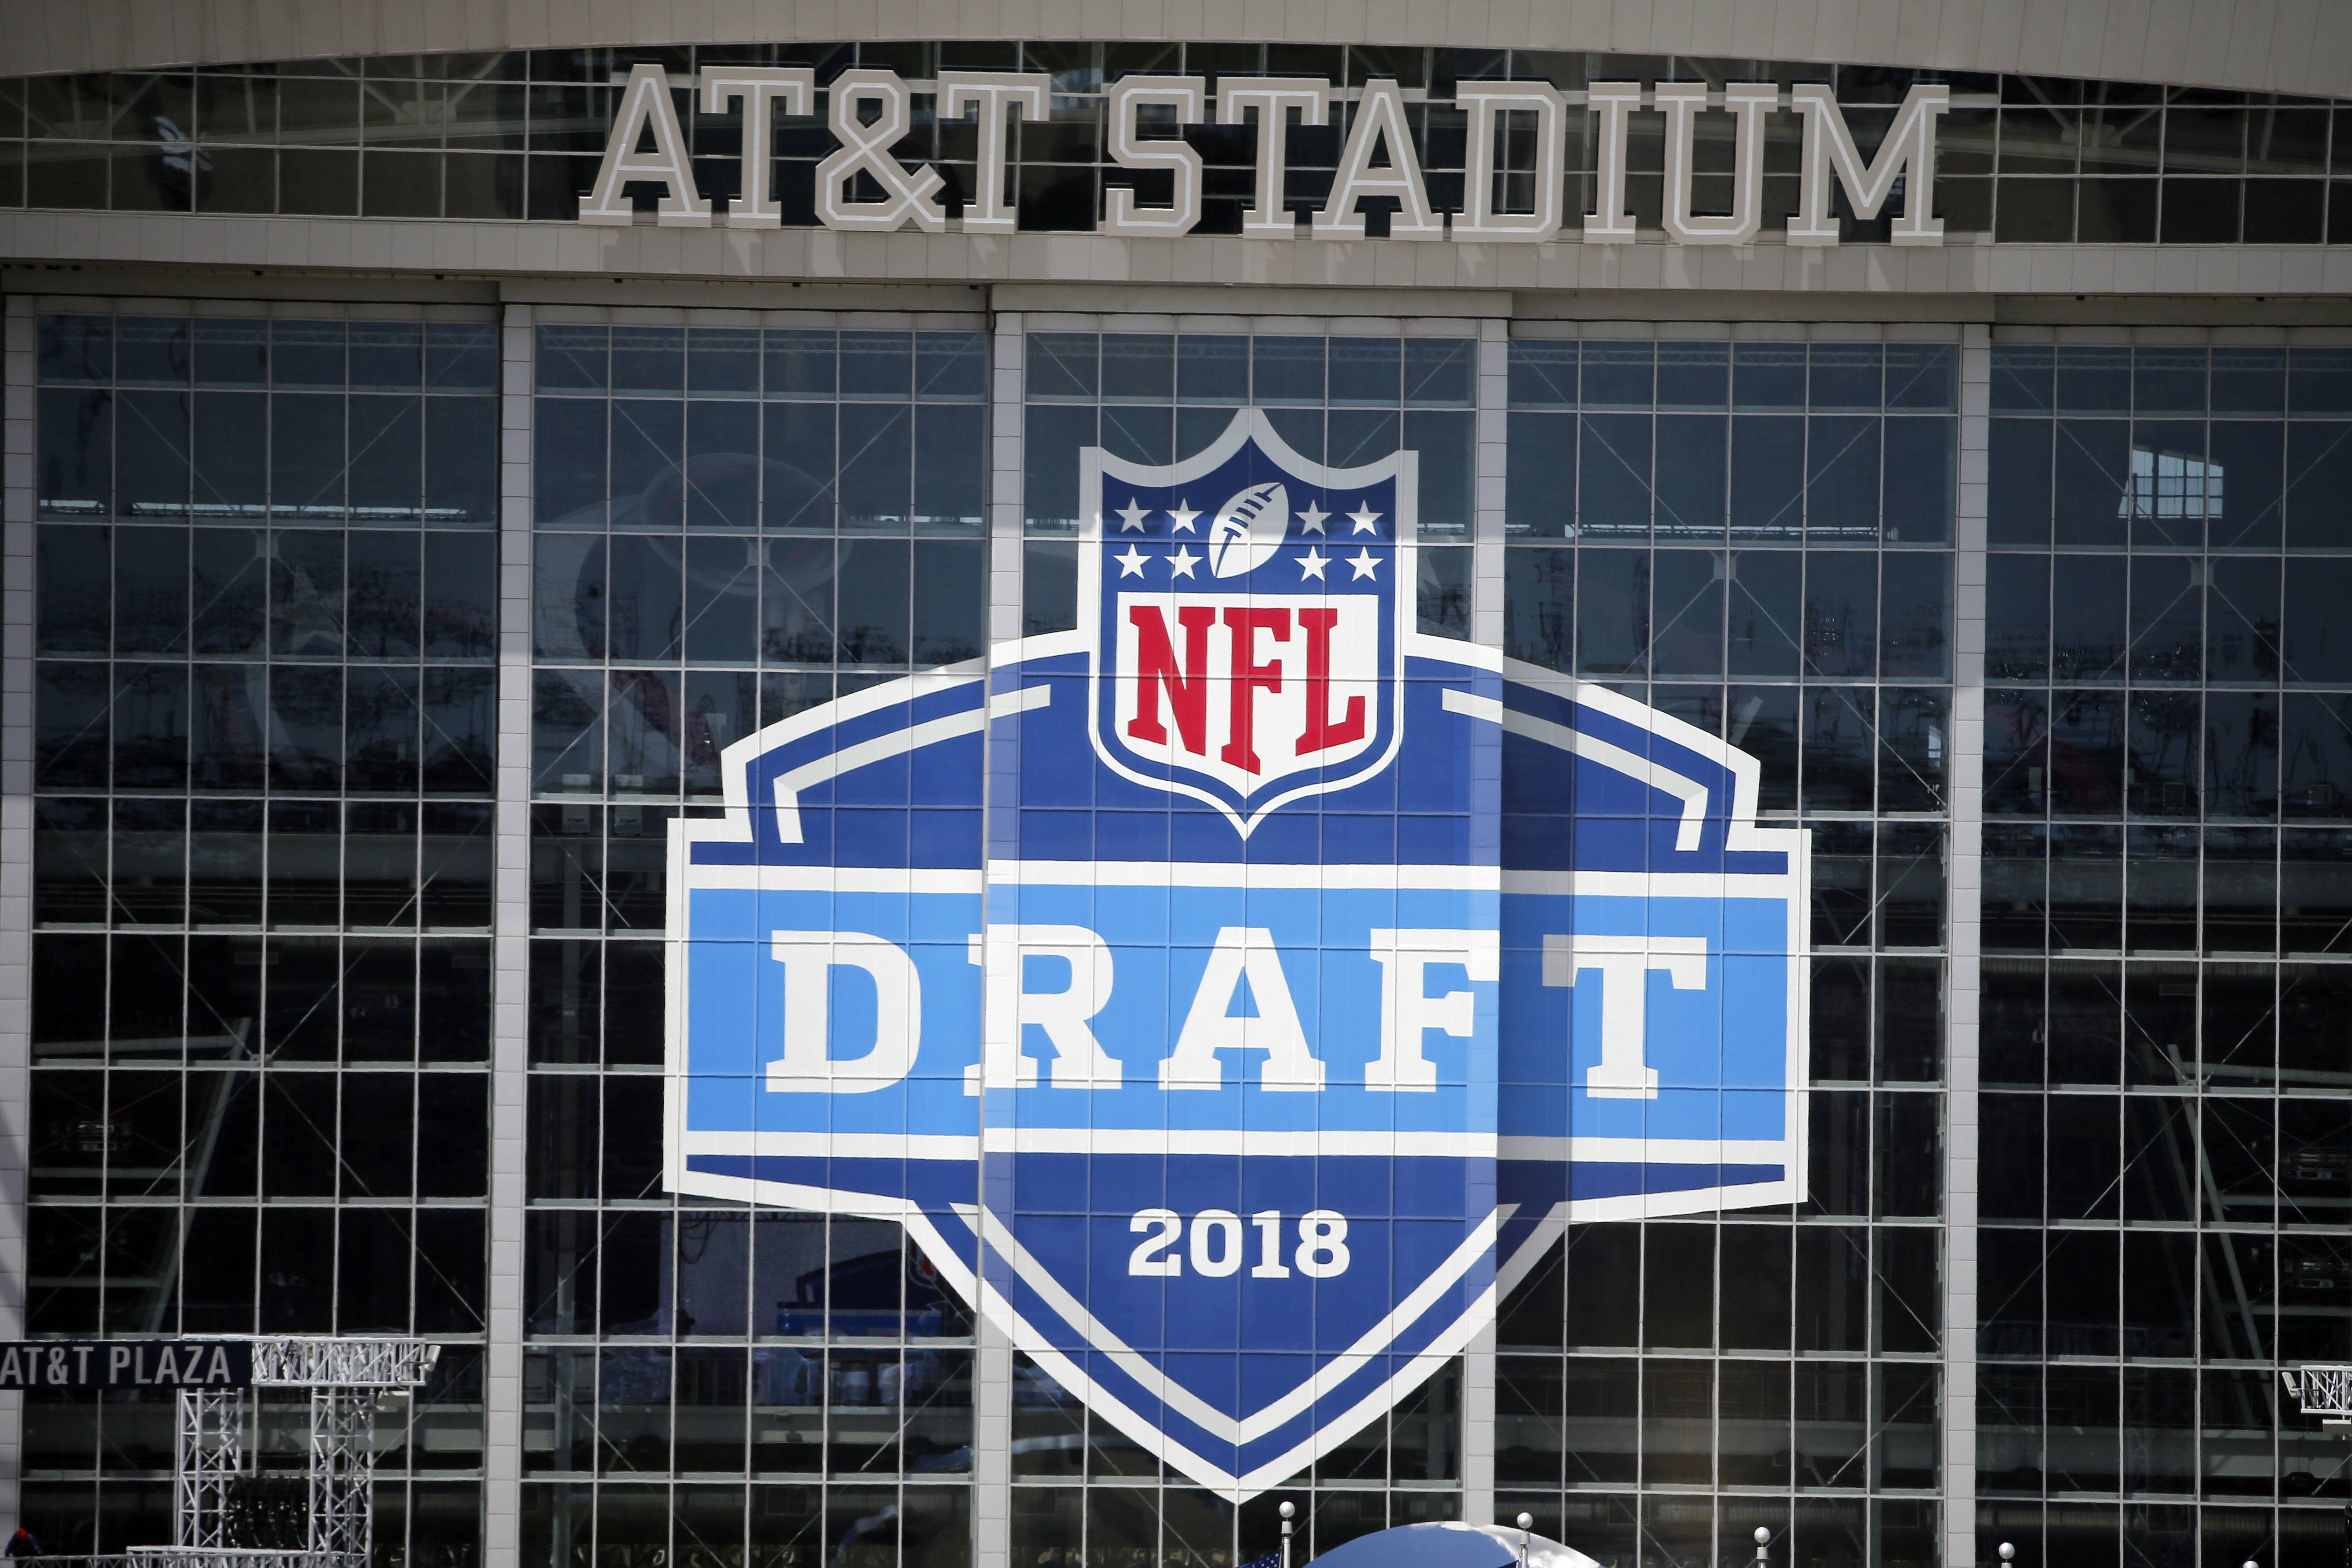 AT&T Stadium will host the NFL draft this week.